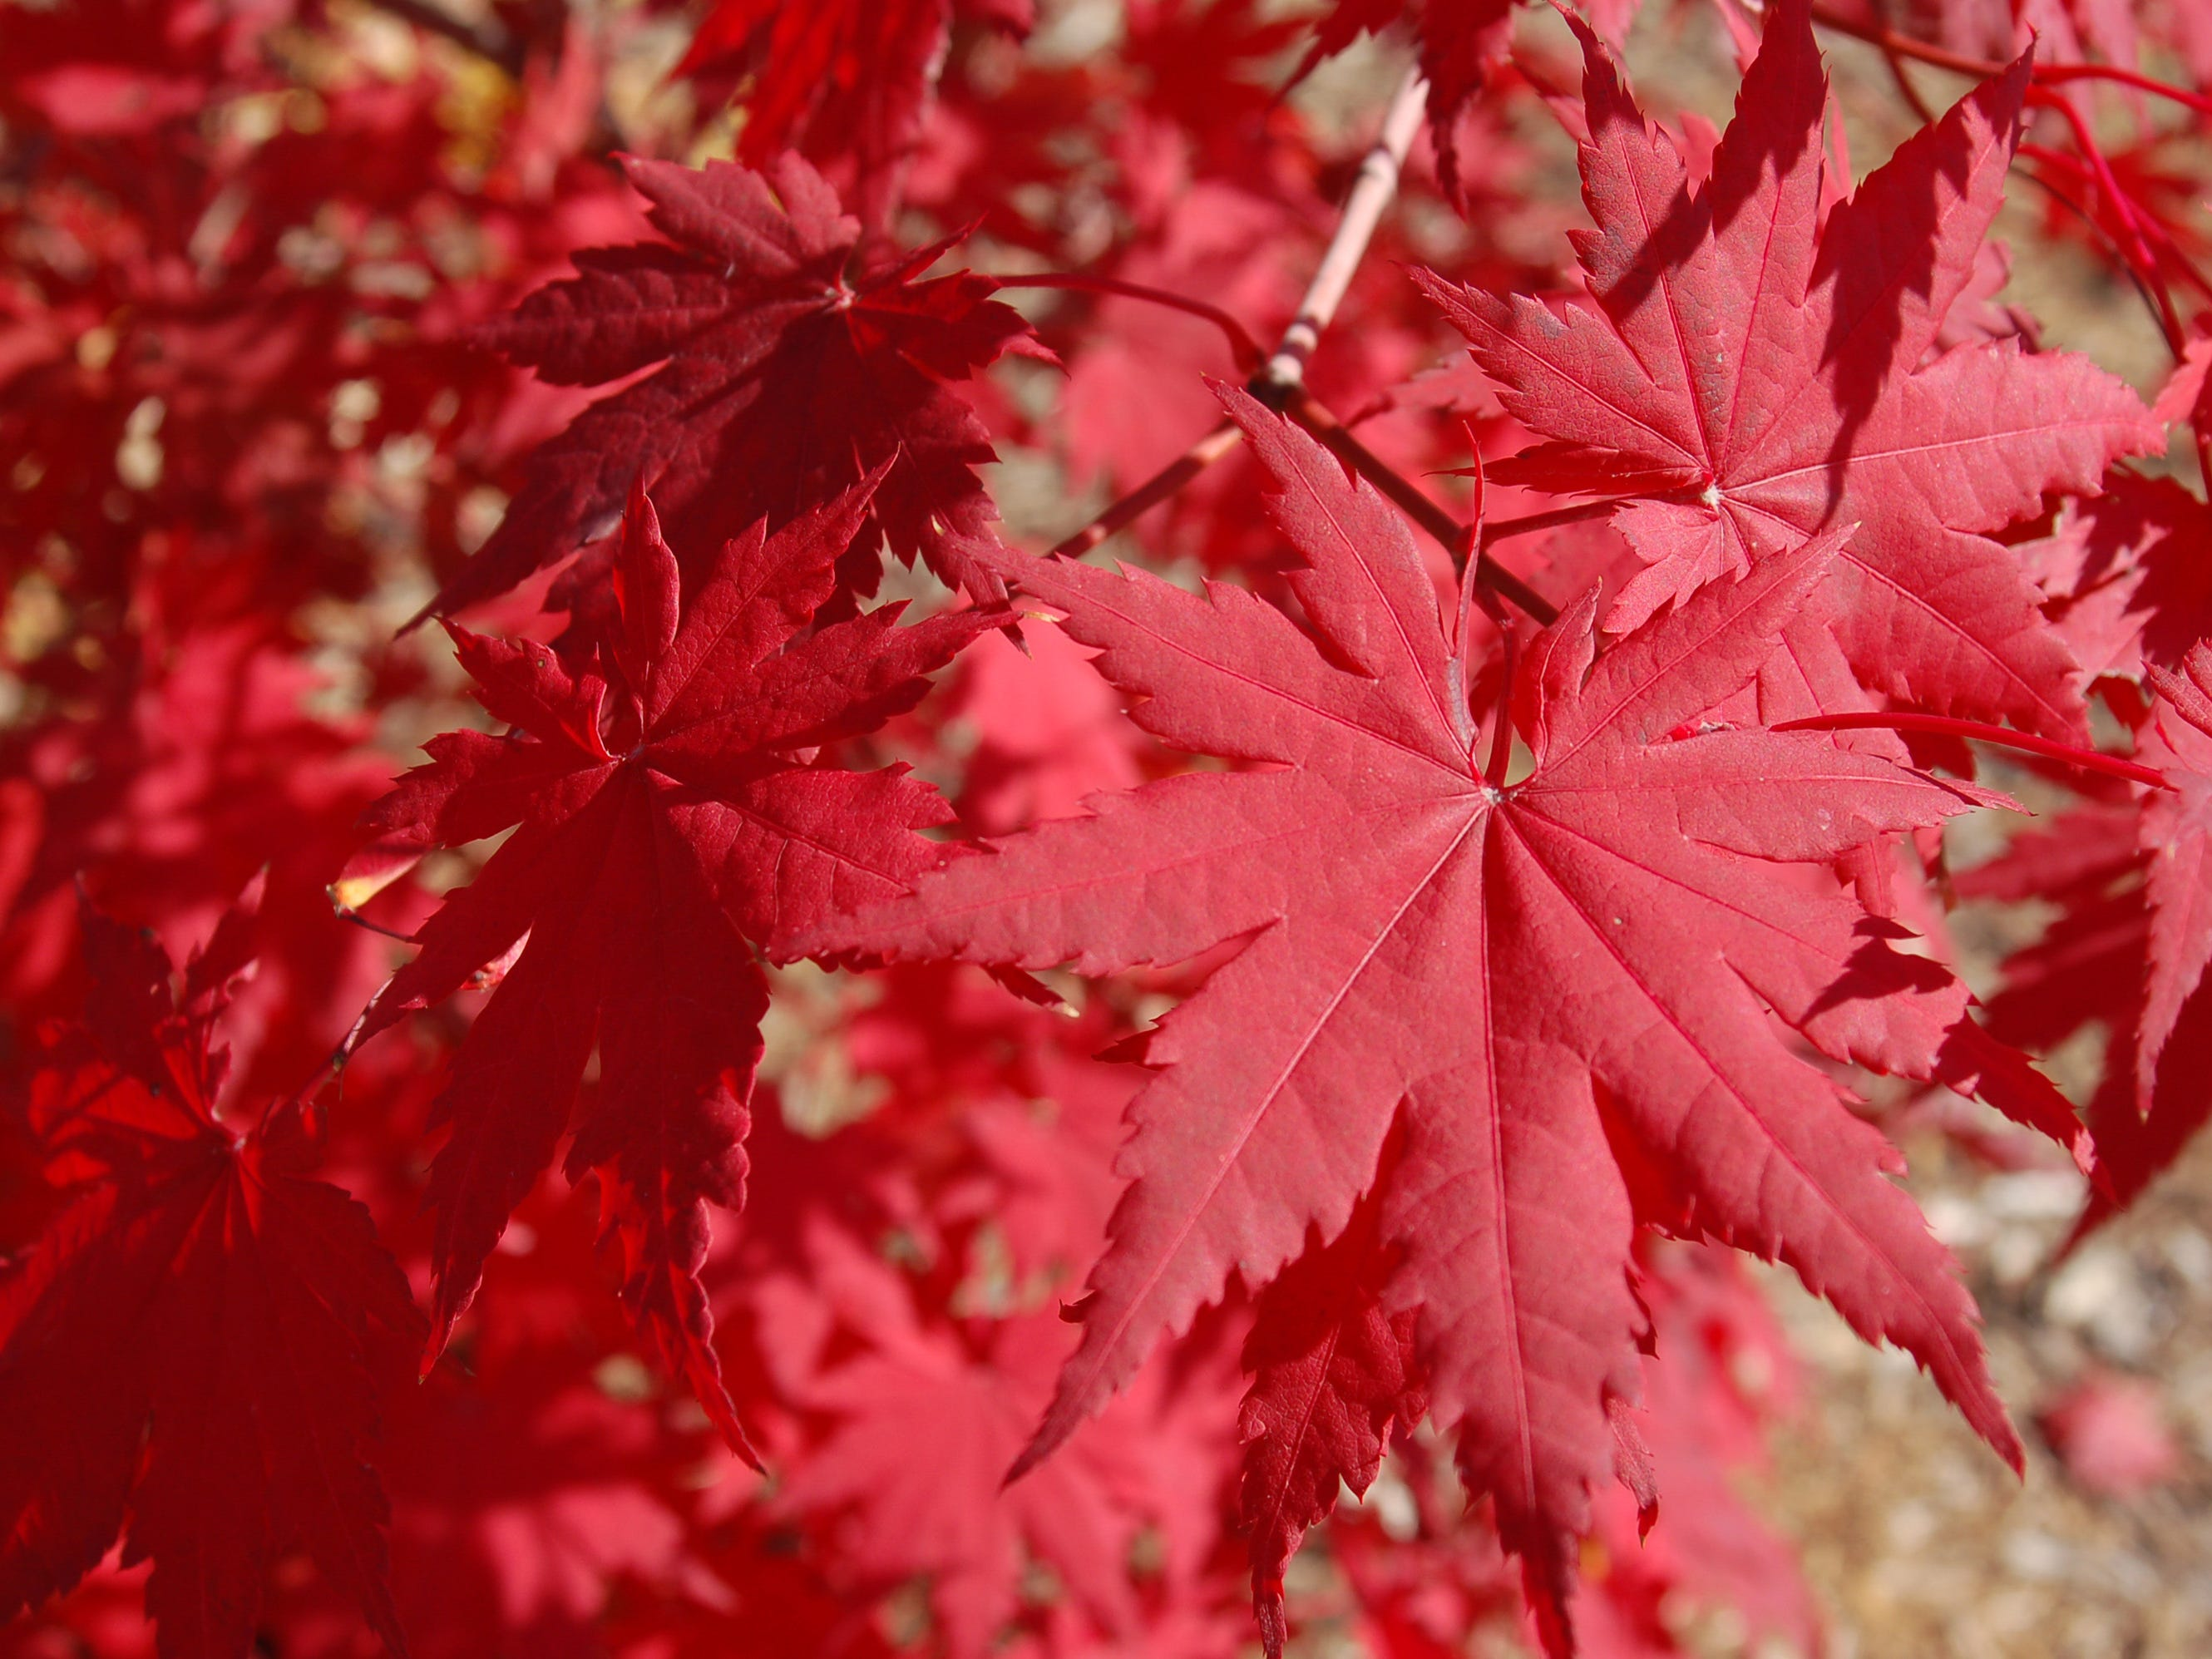 Fall foliage on the Korean maple can be a deep orange-red.